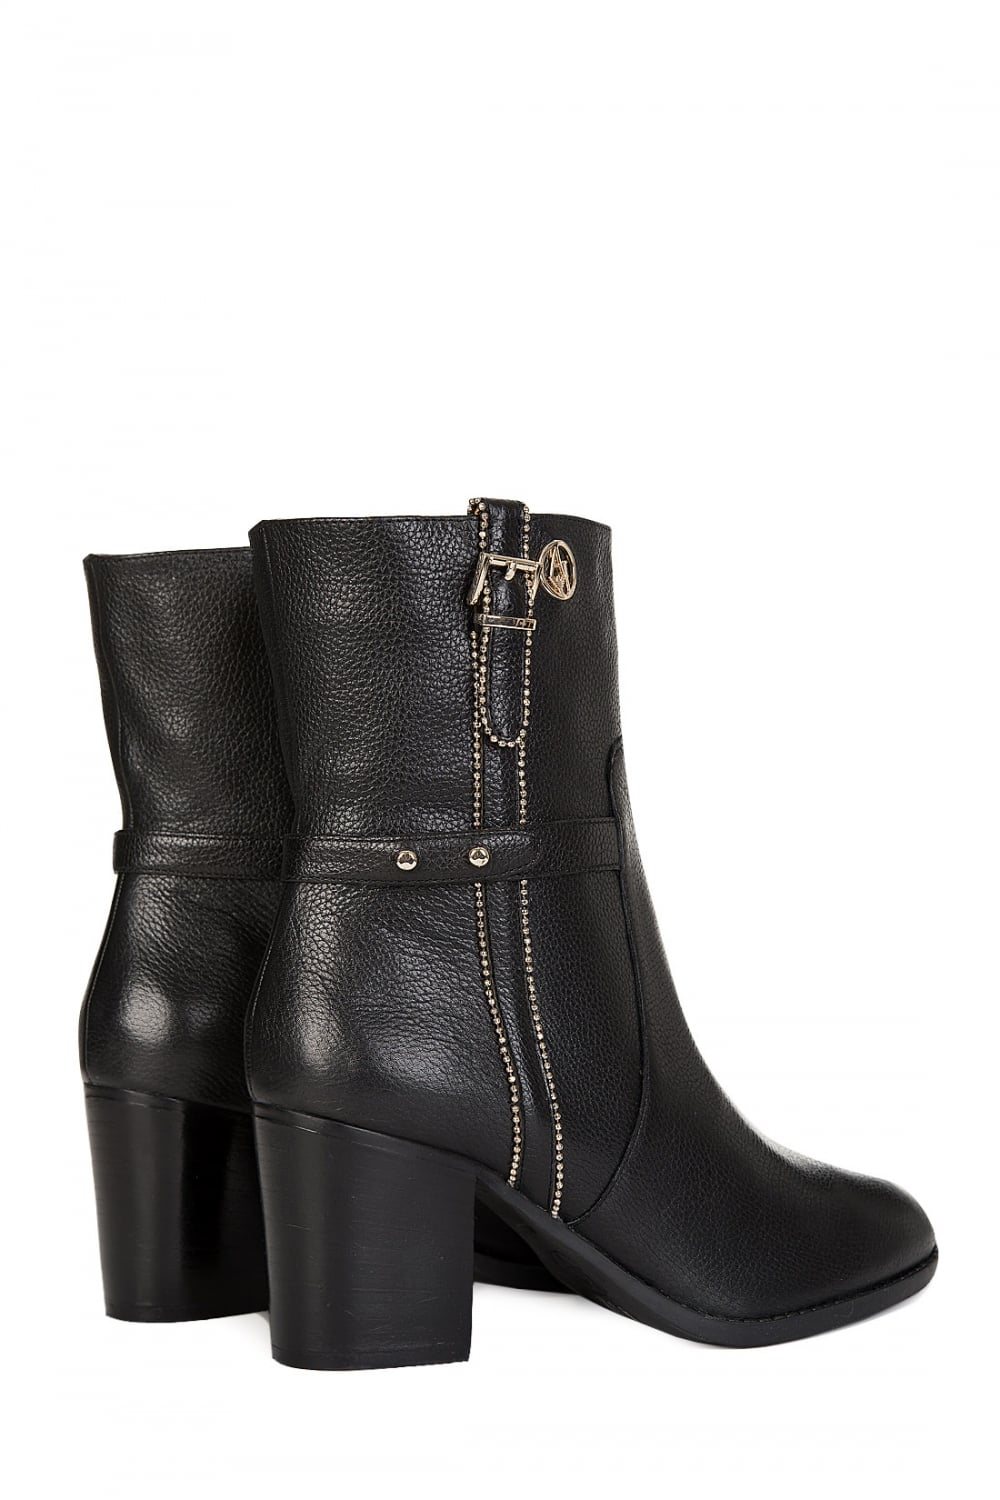 Beautiful How To Wear Ankle Boots 5 New Ideas | StyleCaster